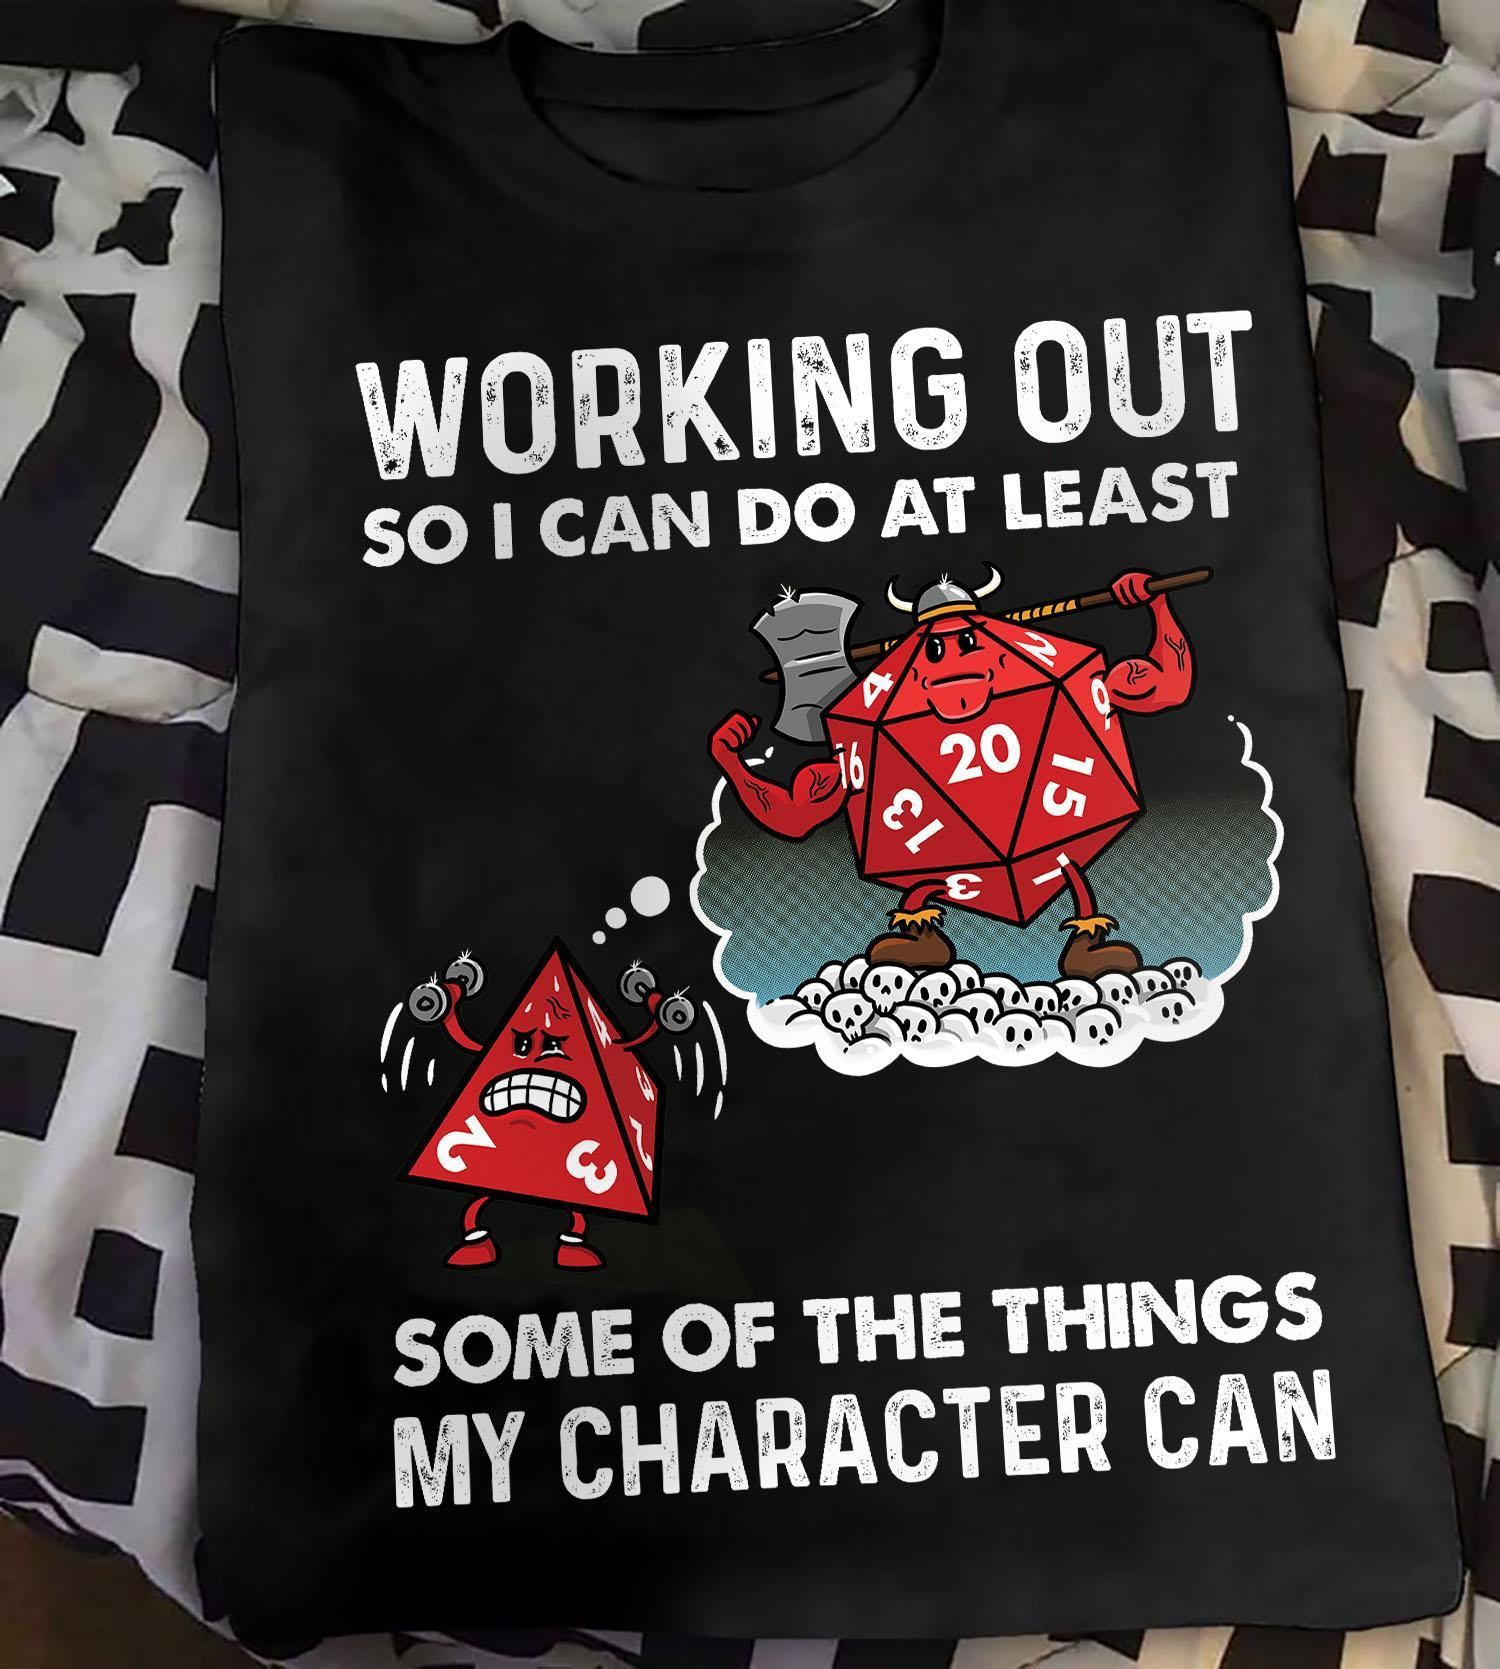 Working Out So I Can Do At Least Some Of The Things y Character Can Shirt